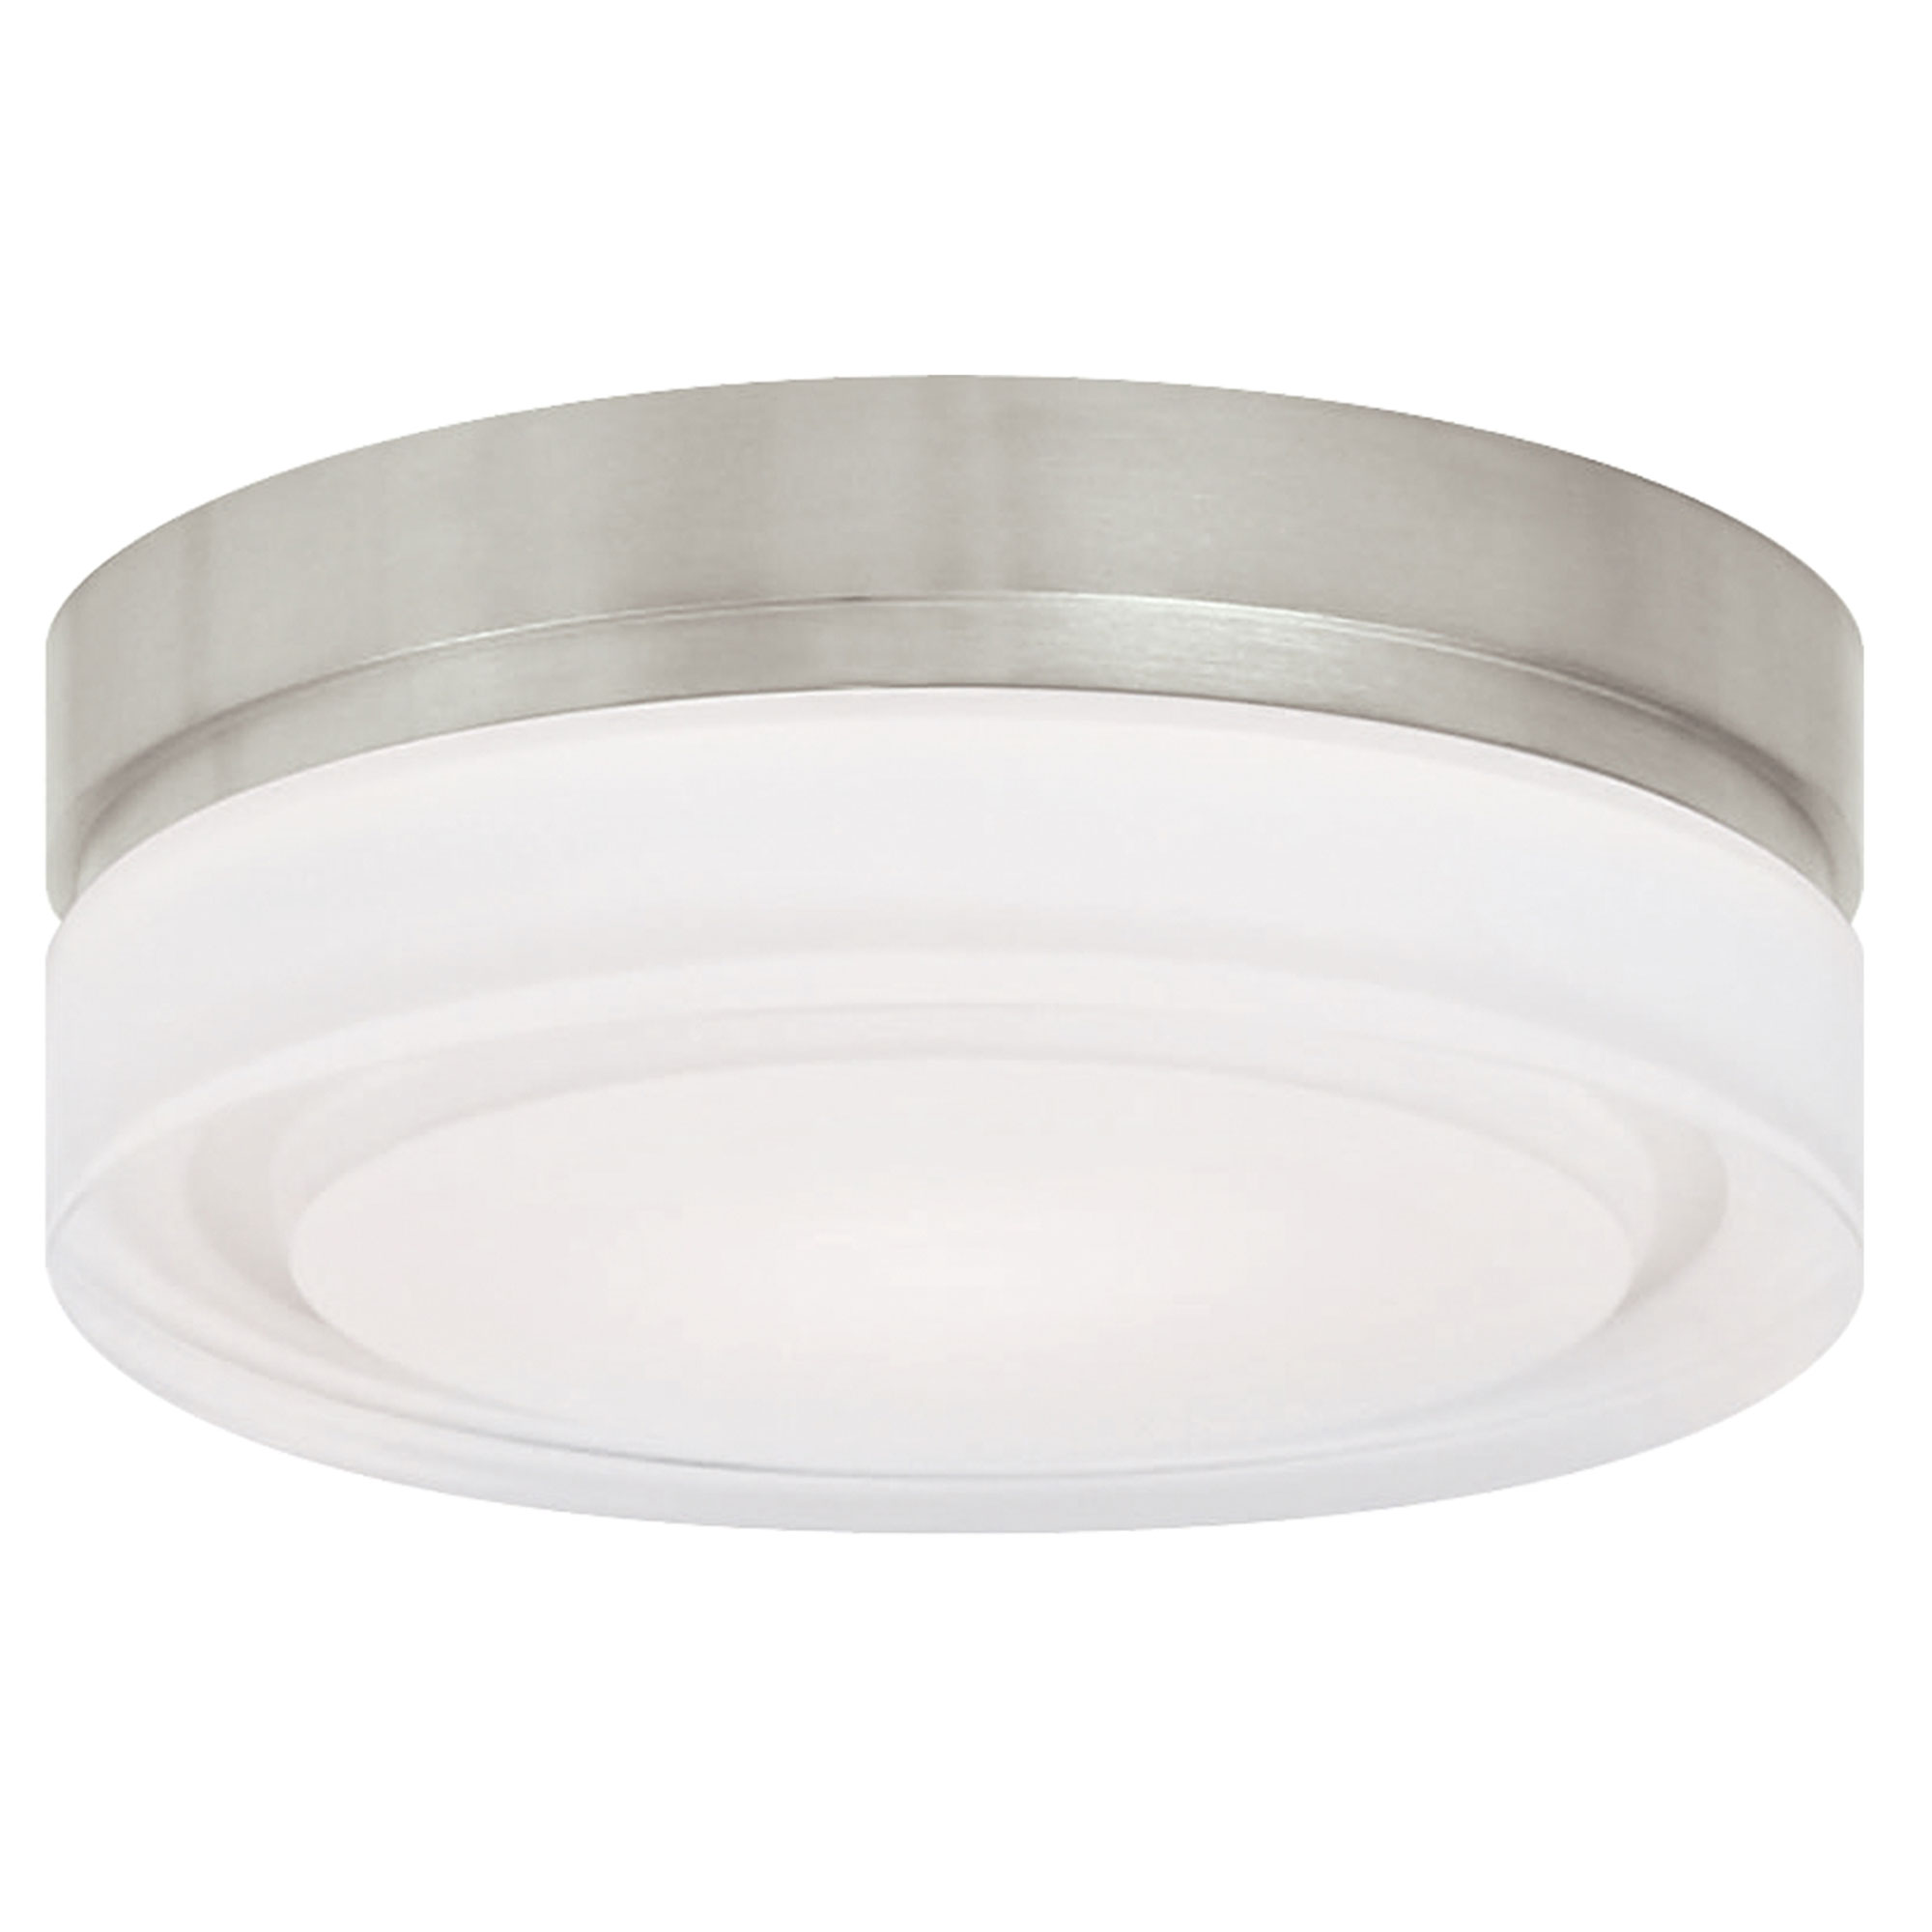 cirque halogen wall ceiling by tech lighting 700cqss